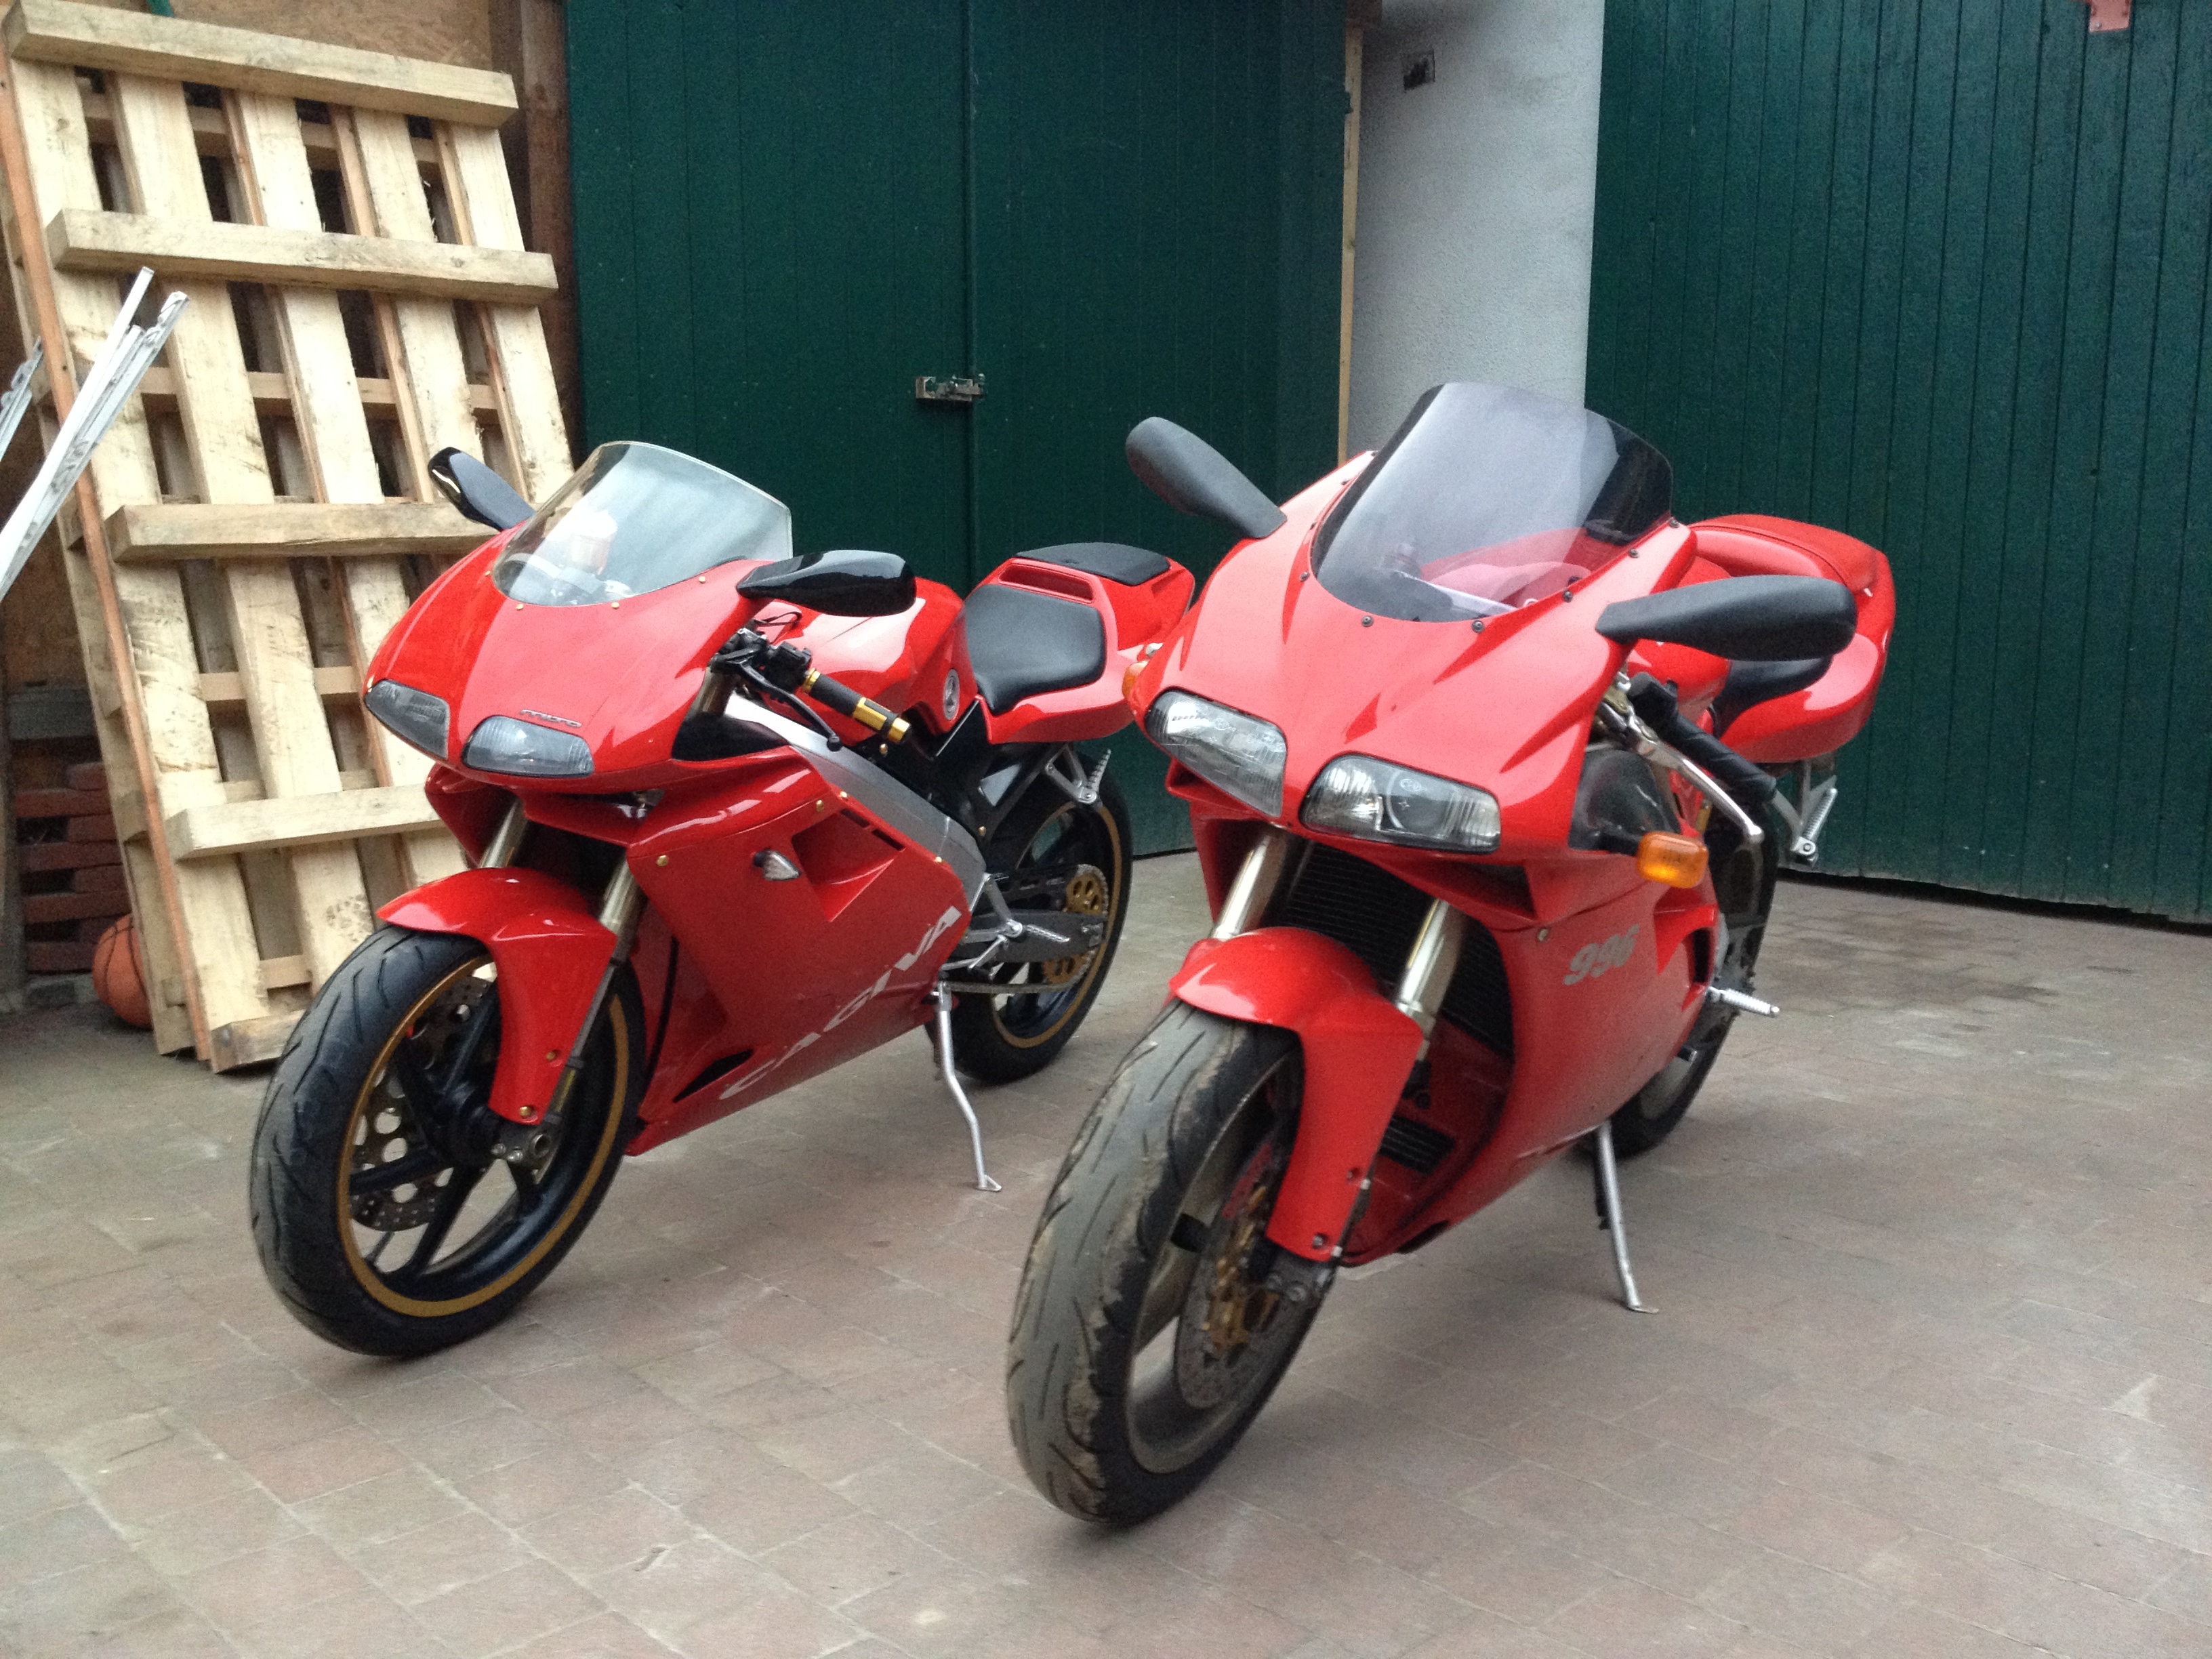 Cagiva Planet 125 1999 images #67381